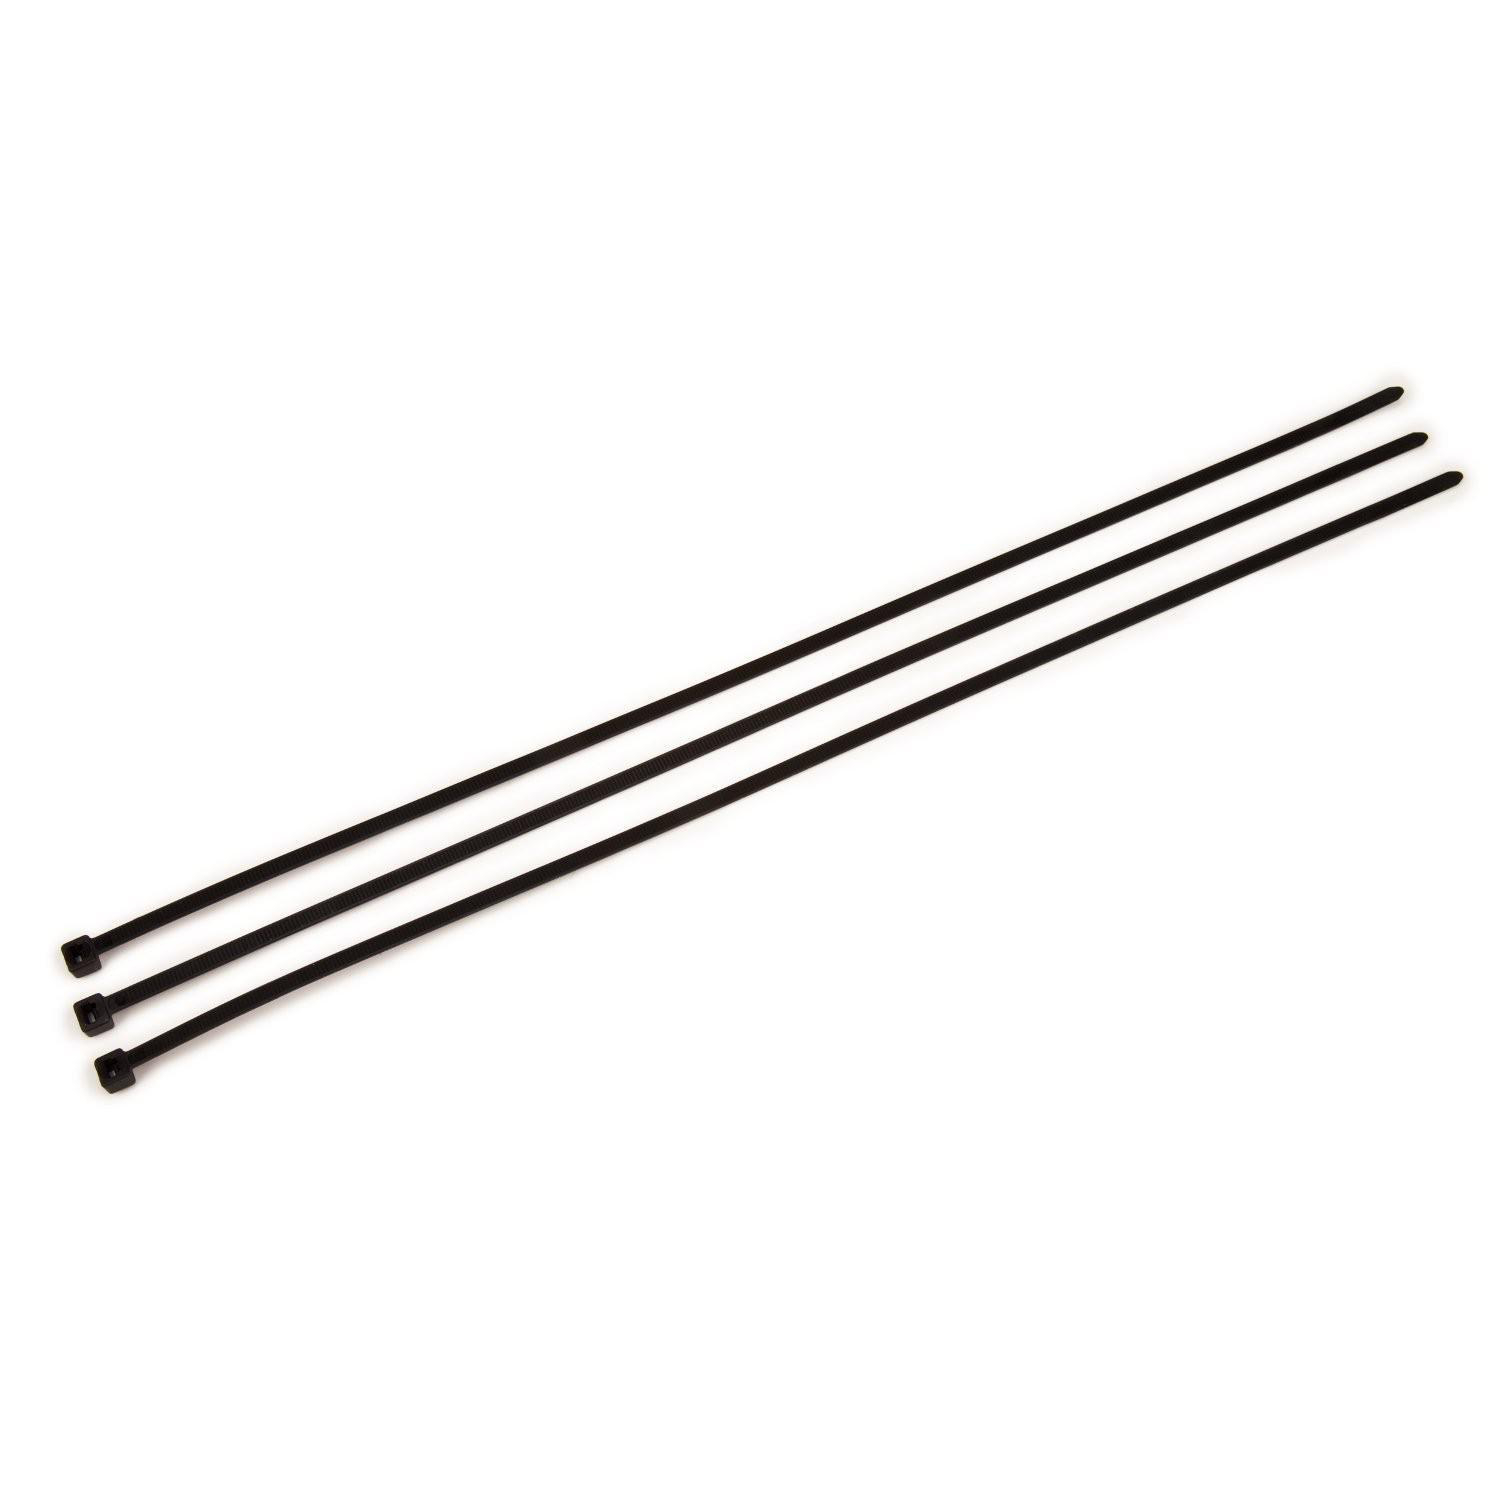 3m Ct15bk50 D Cable Tie 50 Lb 15 In L Polyamide Black Standard